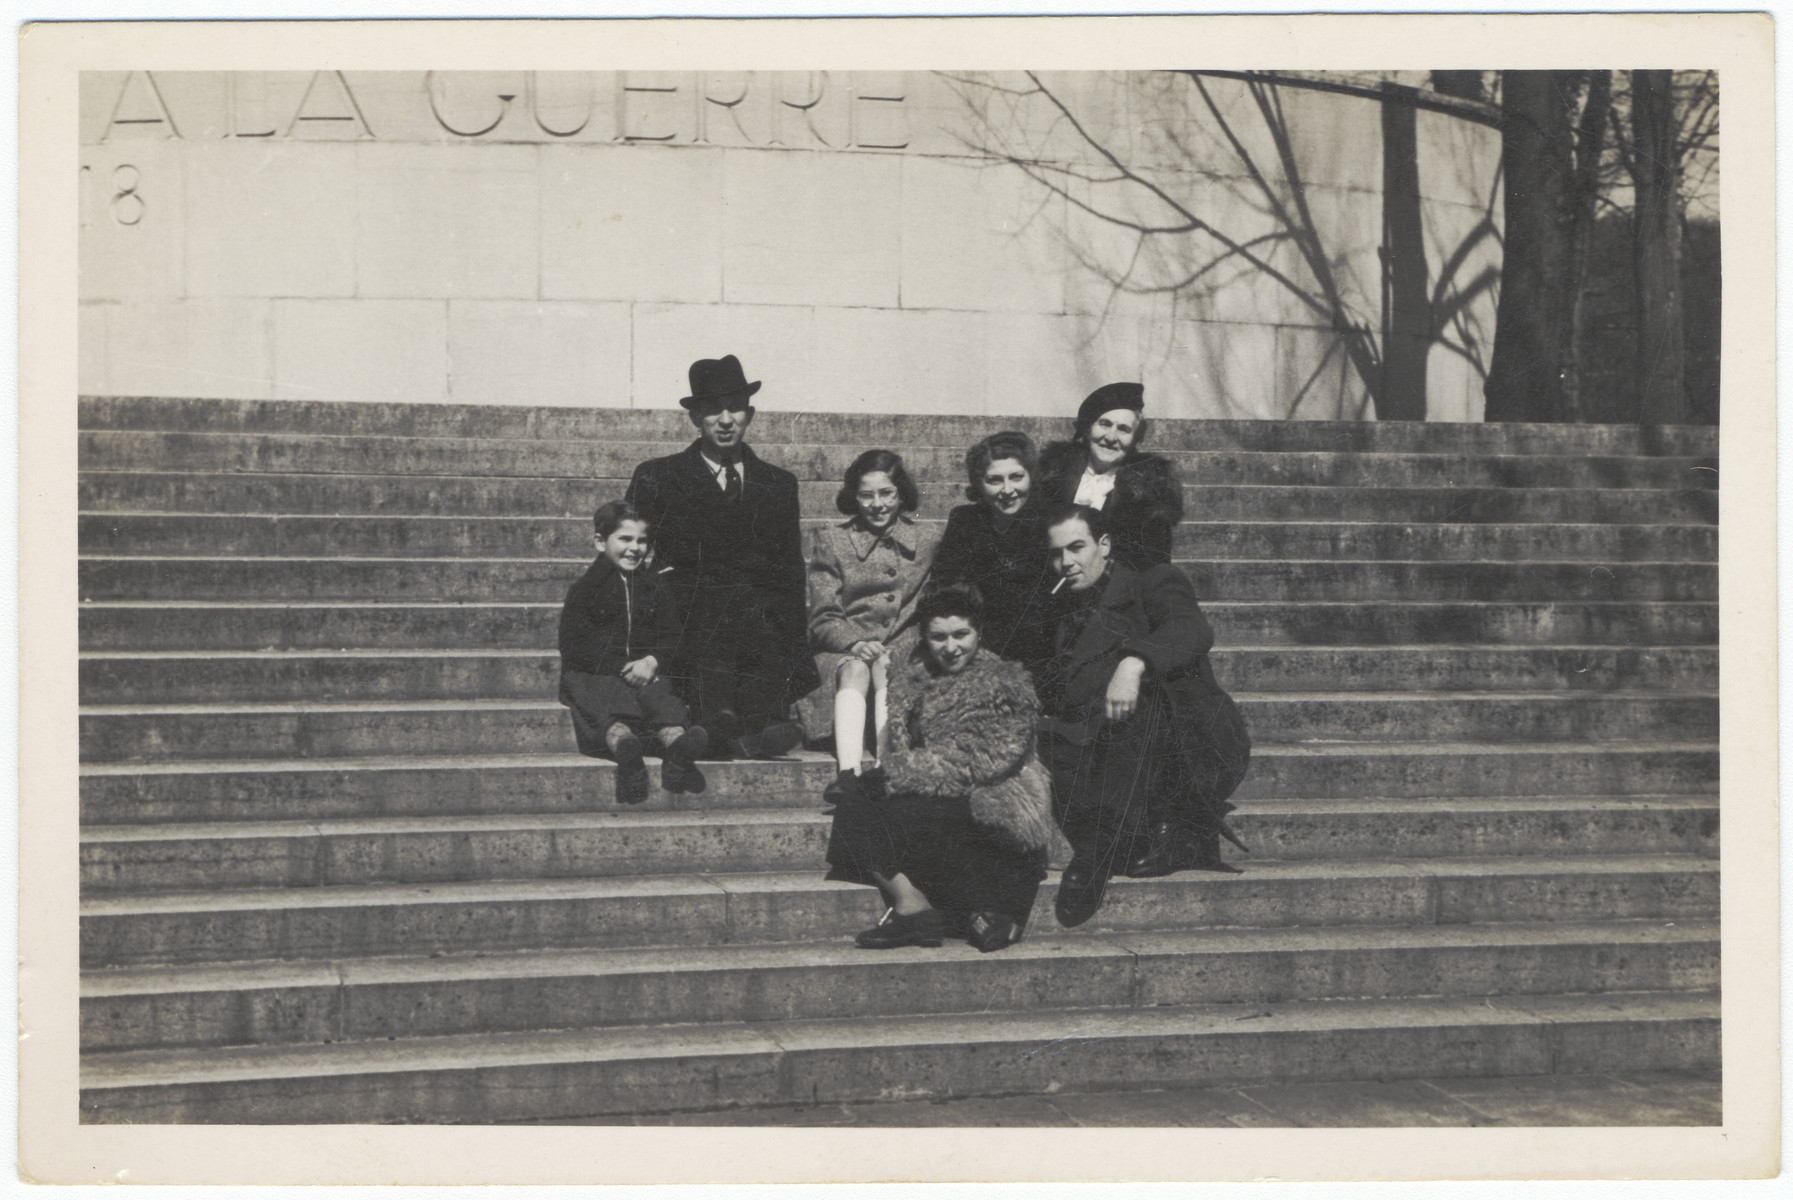 A Jewish family and their friends pose on the steps of a war memorial in Lyon where they are living semi-clandestinely under their own names.  Pictured in the back from left to right are Josey, Alexander, Renee, Luba and Yetta Fainas.  In front are two friends.